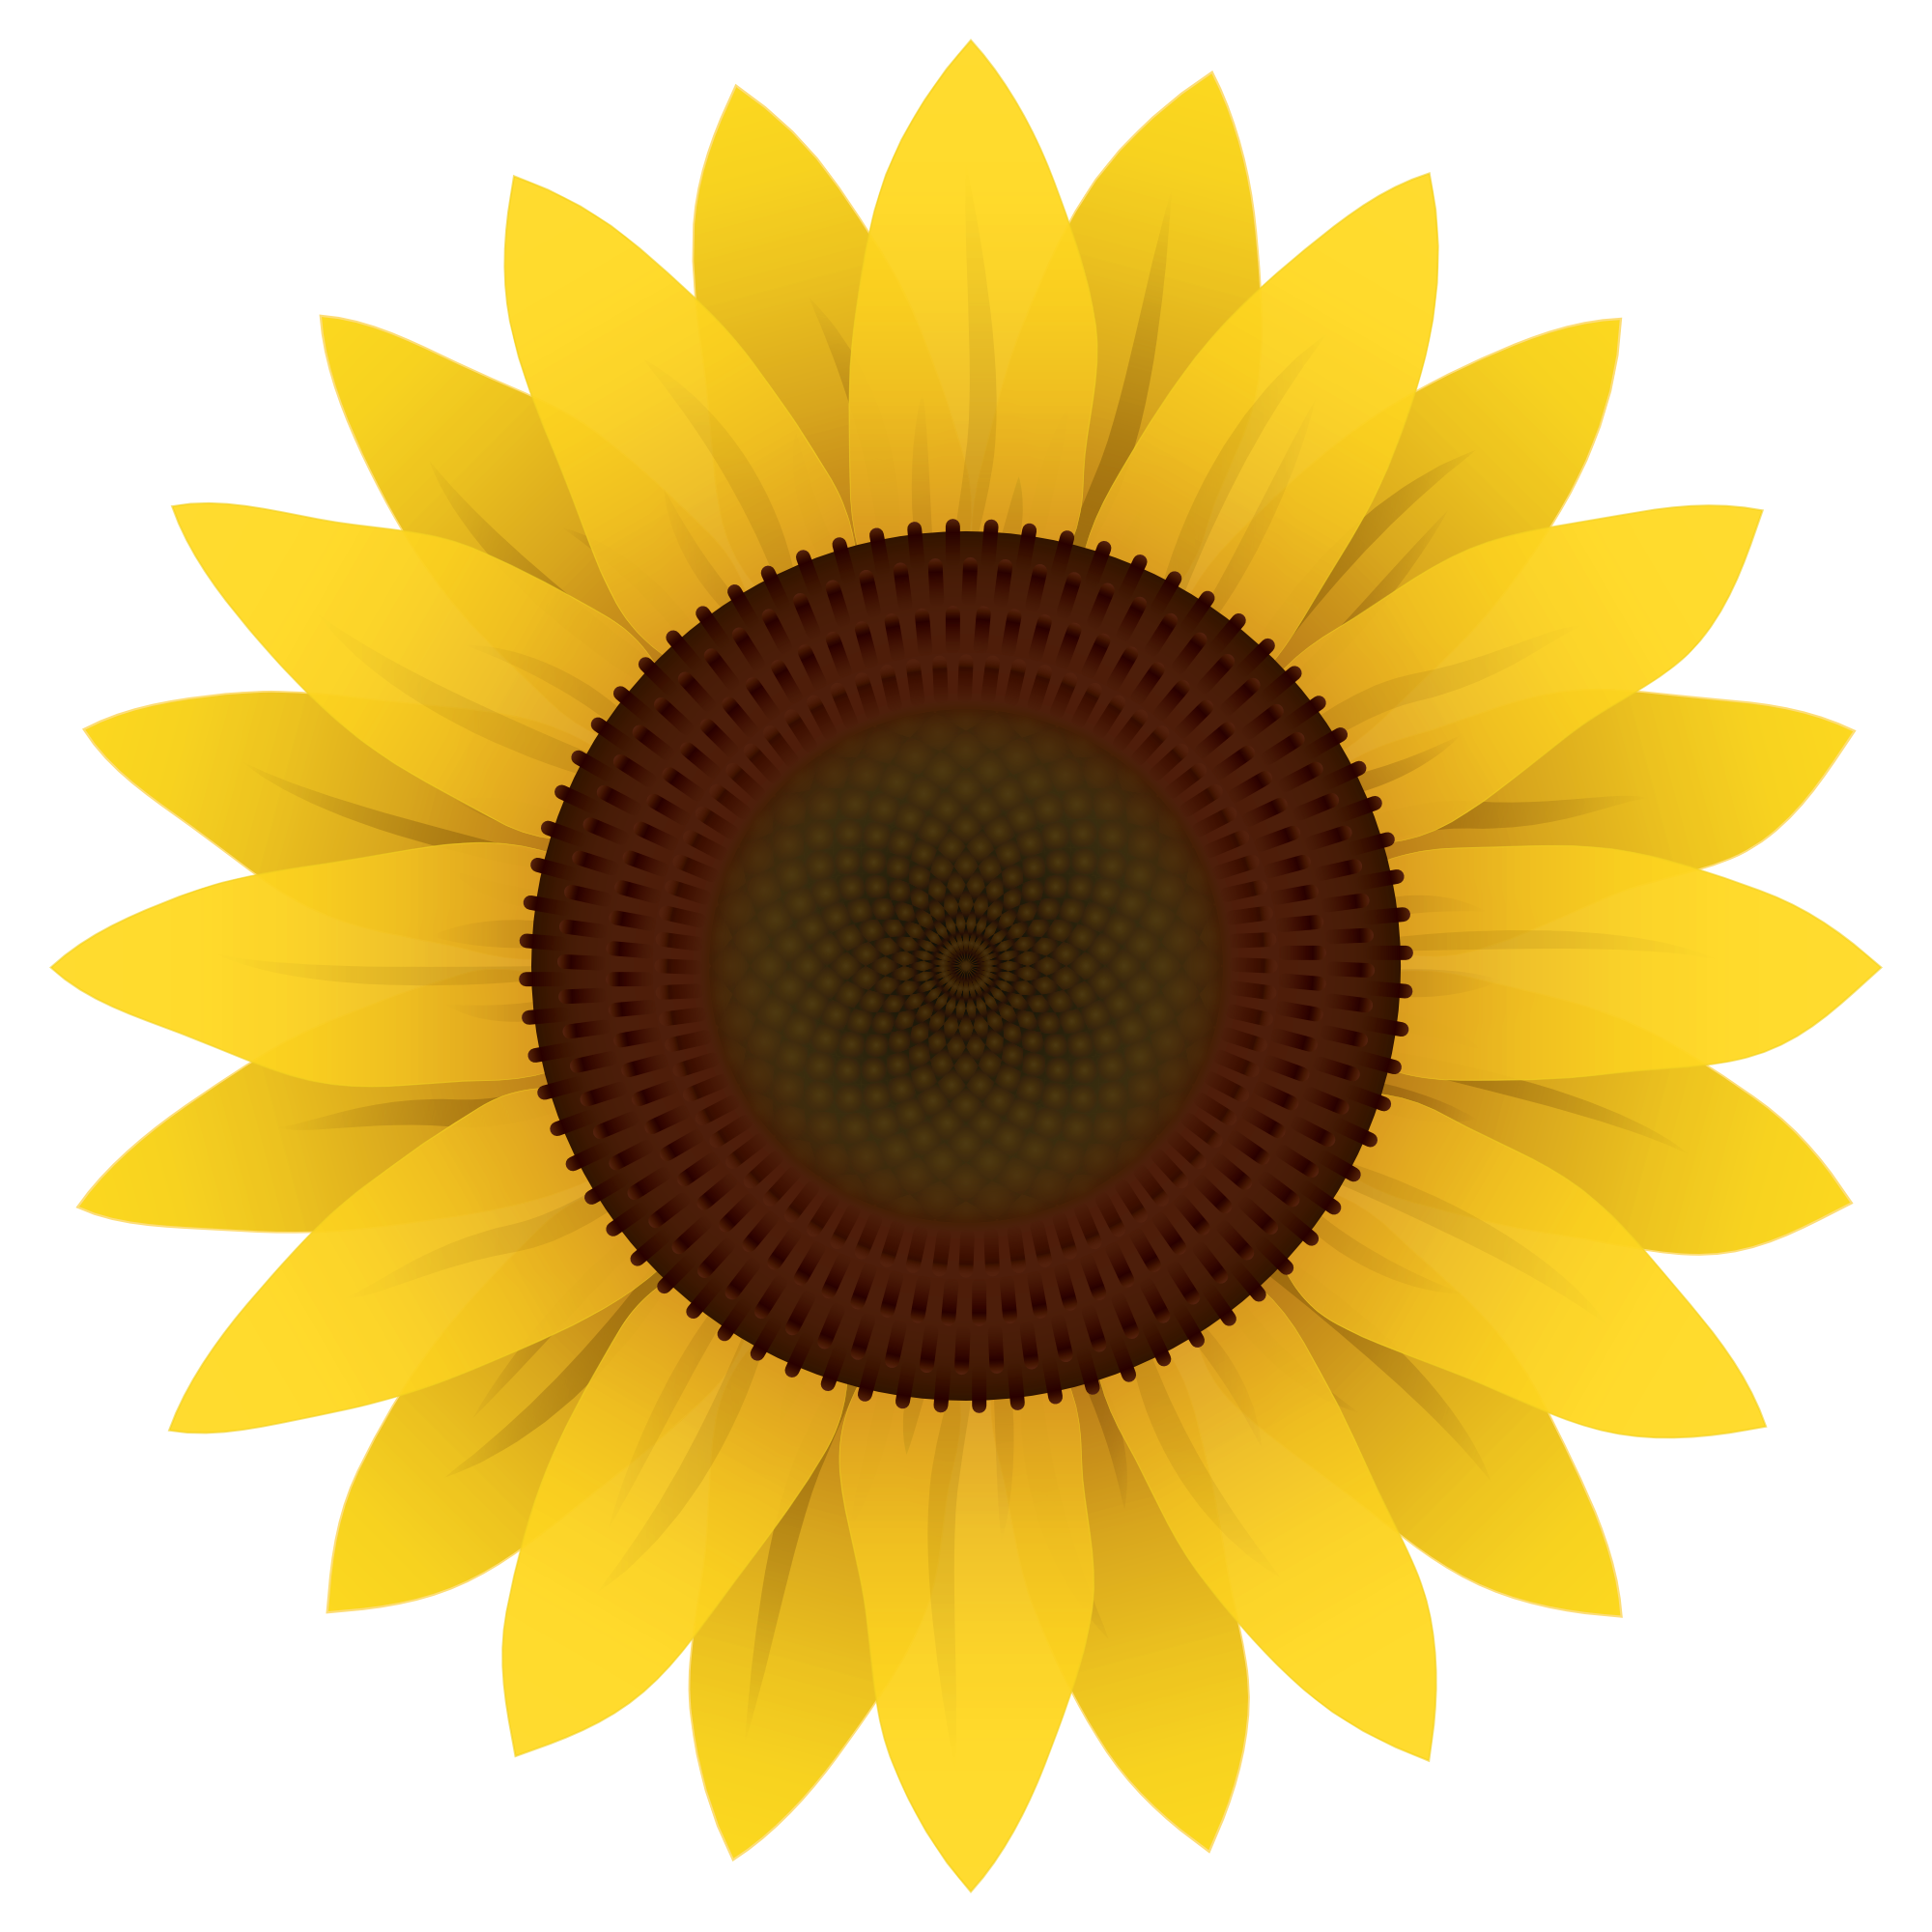 Sunflower clipart vector clip art royalty free stock Sunflower Vector PNG Image - PurePNG | Free transparent CC0 ... clip art royalty free stock